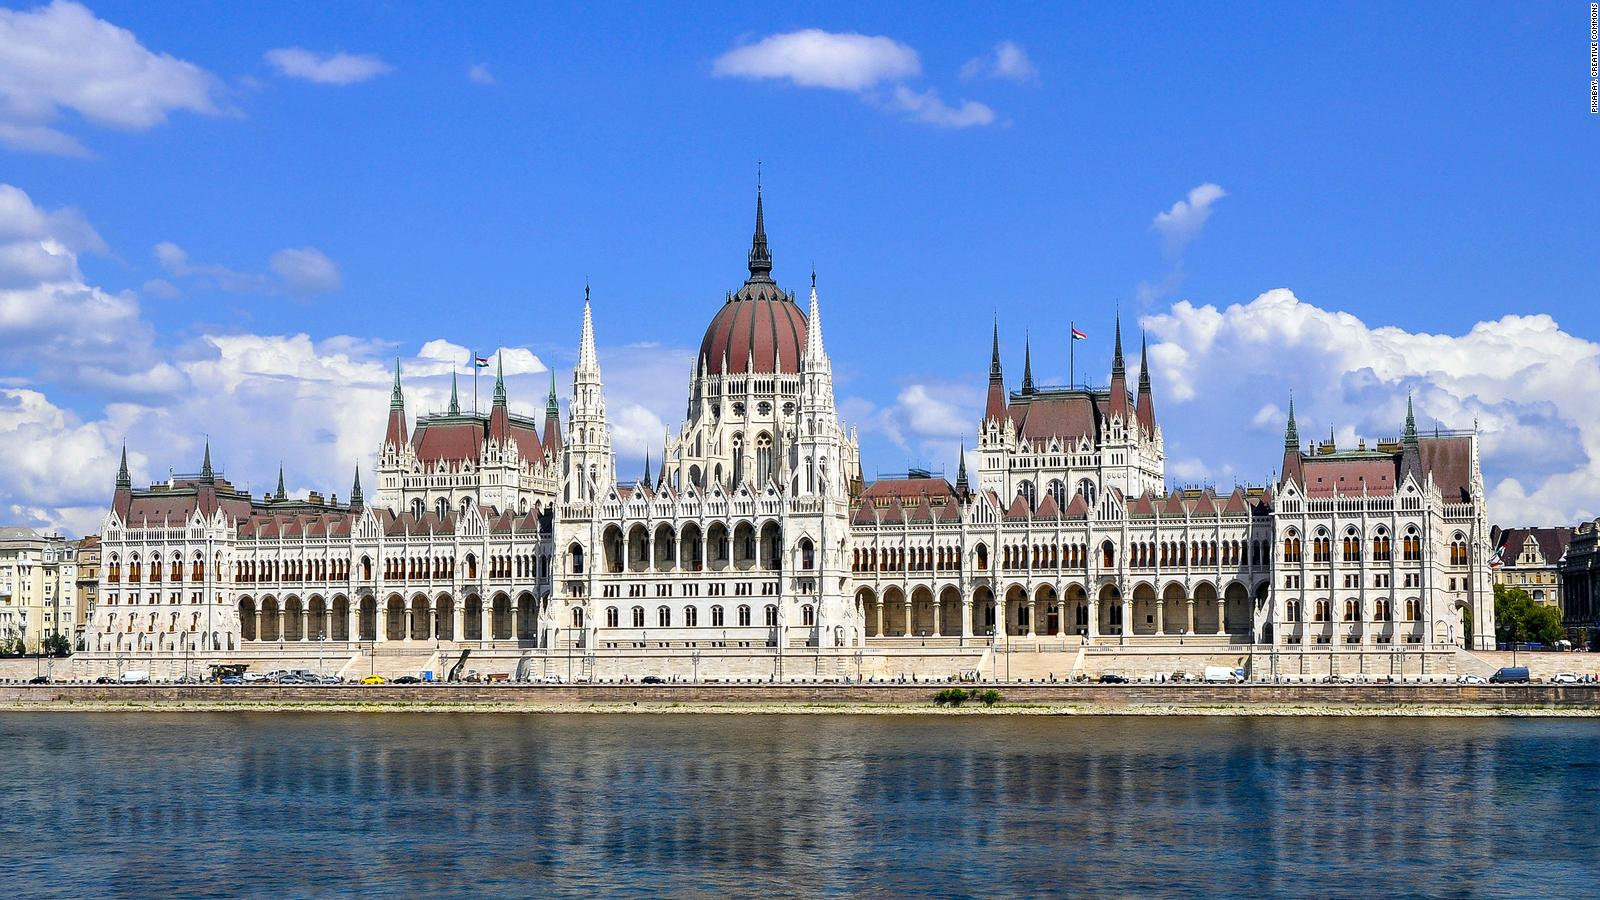 Hungary to Vote on Bill That Would Define Gender Based on Biological Sex and Ban Attempts to Change Gender on Official Documents